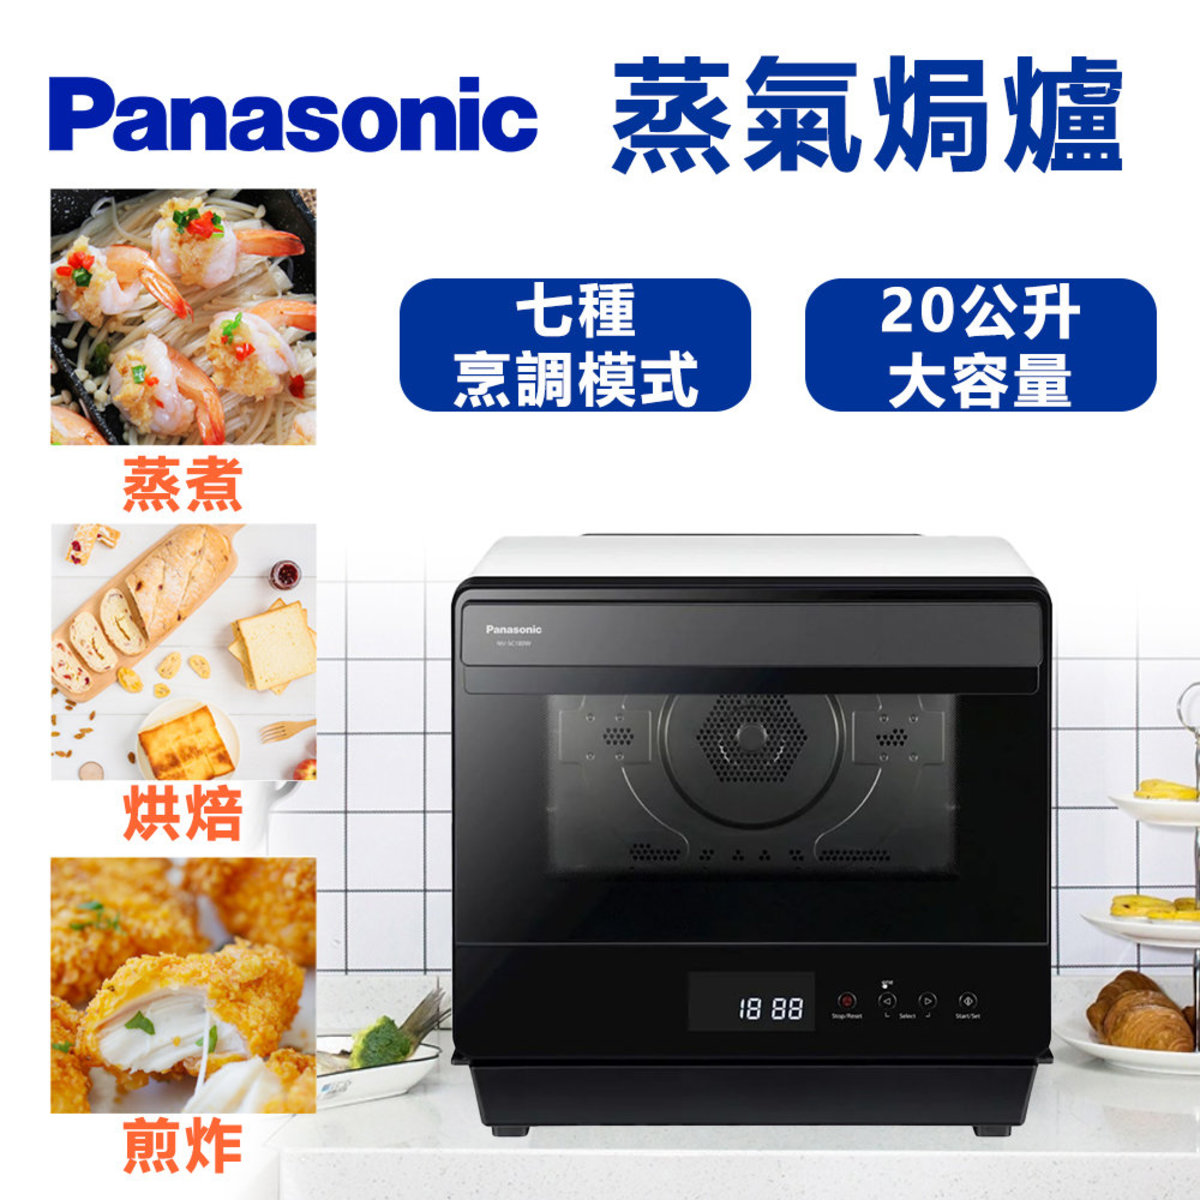 Panasonic | NU-SC180W Steam Oven (20L) | HKTVmall Online Shopping